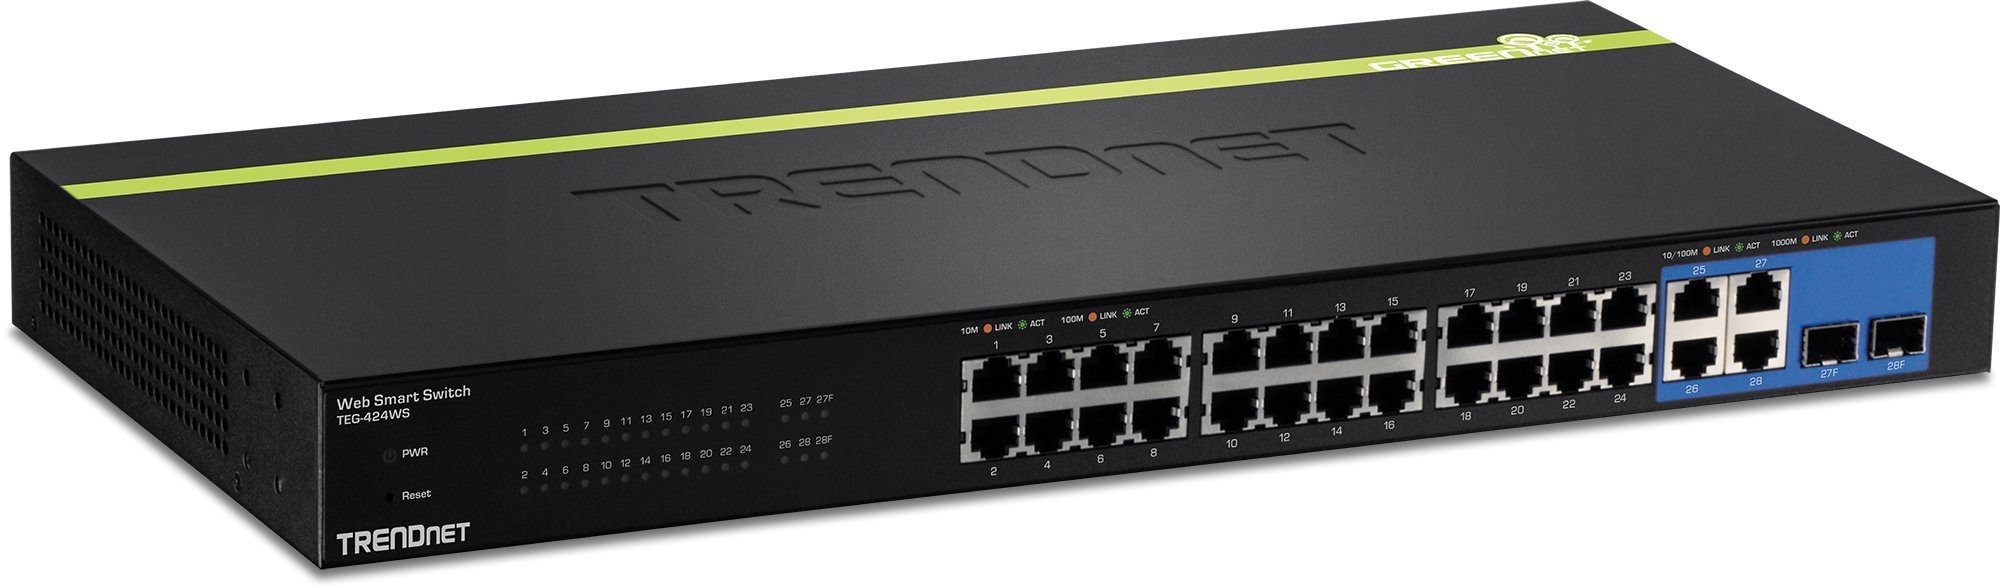 TRENDnet 24-Port 10/100 Mbps Web Smart Switch, 4 x Gigabit Uplink Ports, 2 x Shared SFP Slots, Fanless, Rack Mountable, Lifetime Protection, TEG-424WS by TRENDnet (Image #1)